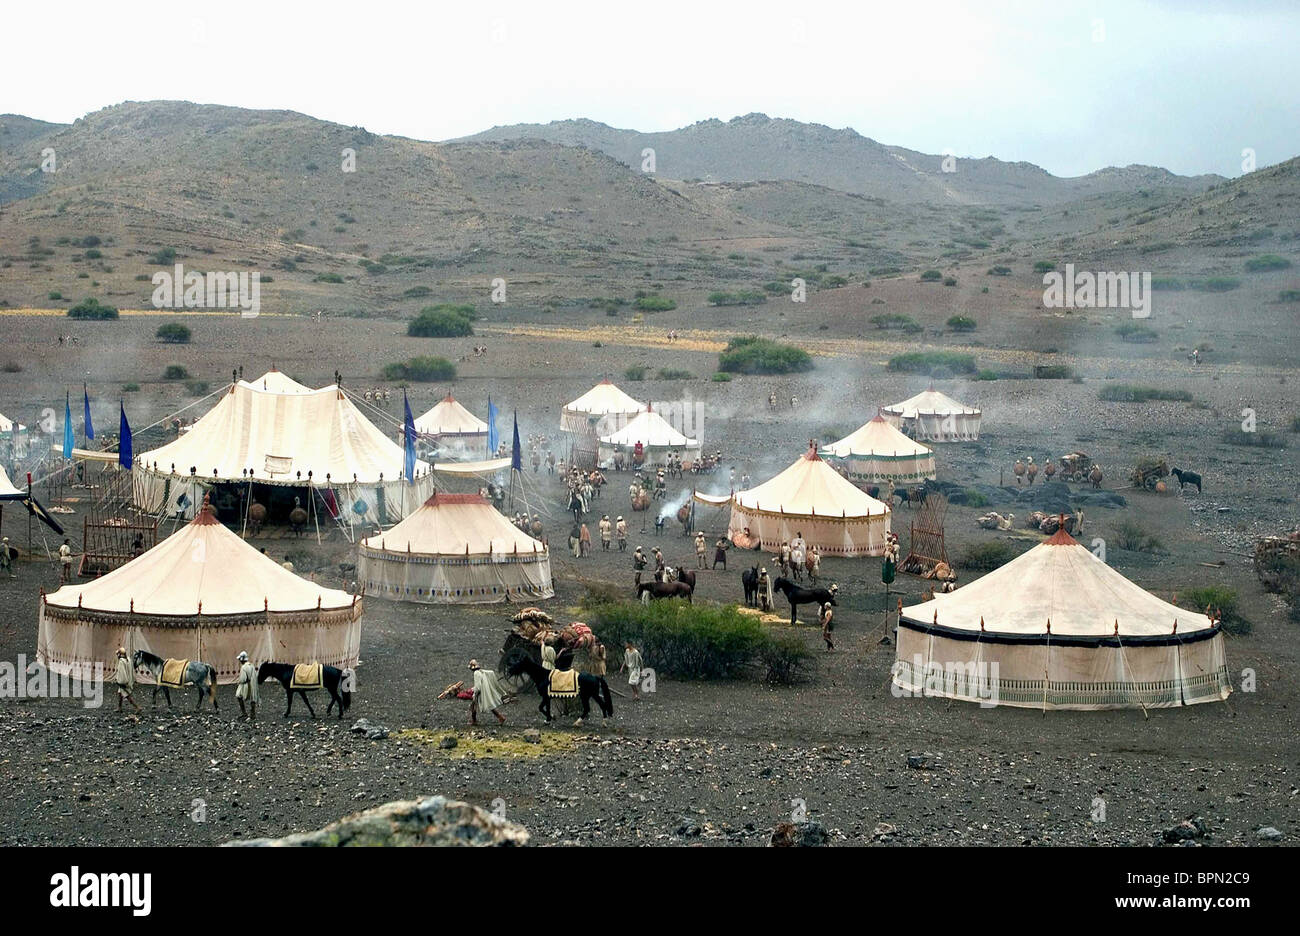 TEMPORARY CAMP SITE ALEXANDER; ALEXANDER THE GREAT (2004) - Stock Image